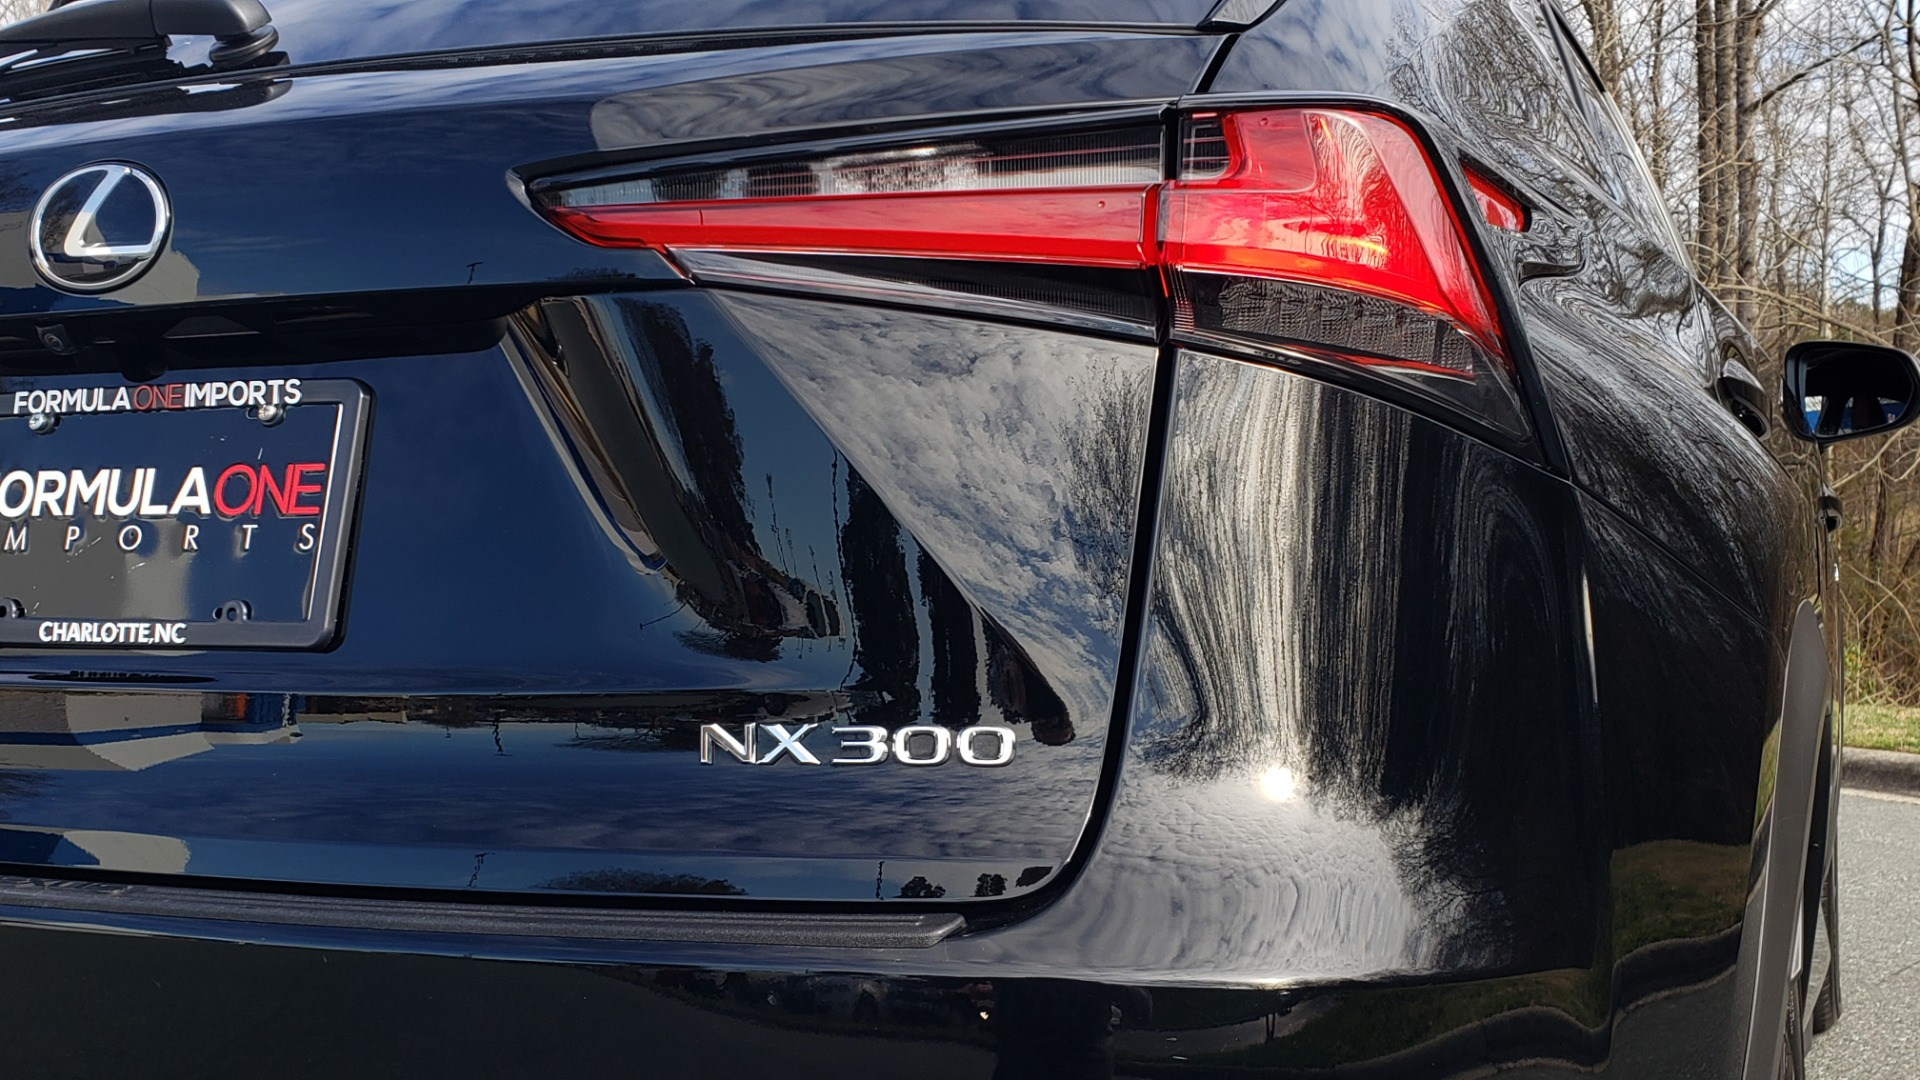 Used 2018 Lexus NX 300 F-SPORT / LEATHER / ACCY PKG / 18IN WHEELS for sale Sold at Formula Imports in Charlotte NC 28227 29